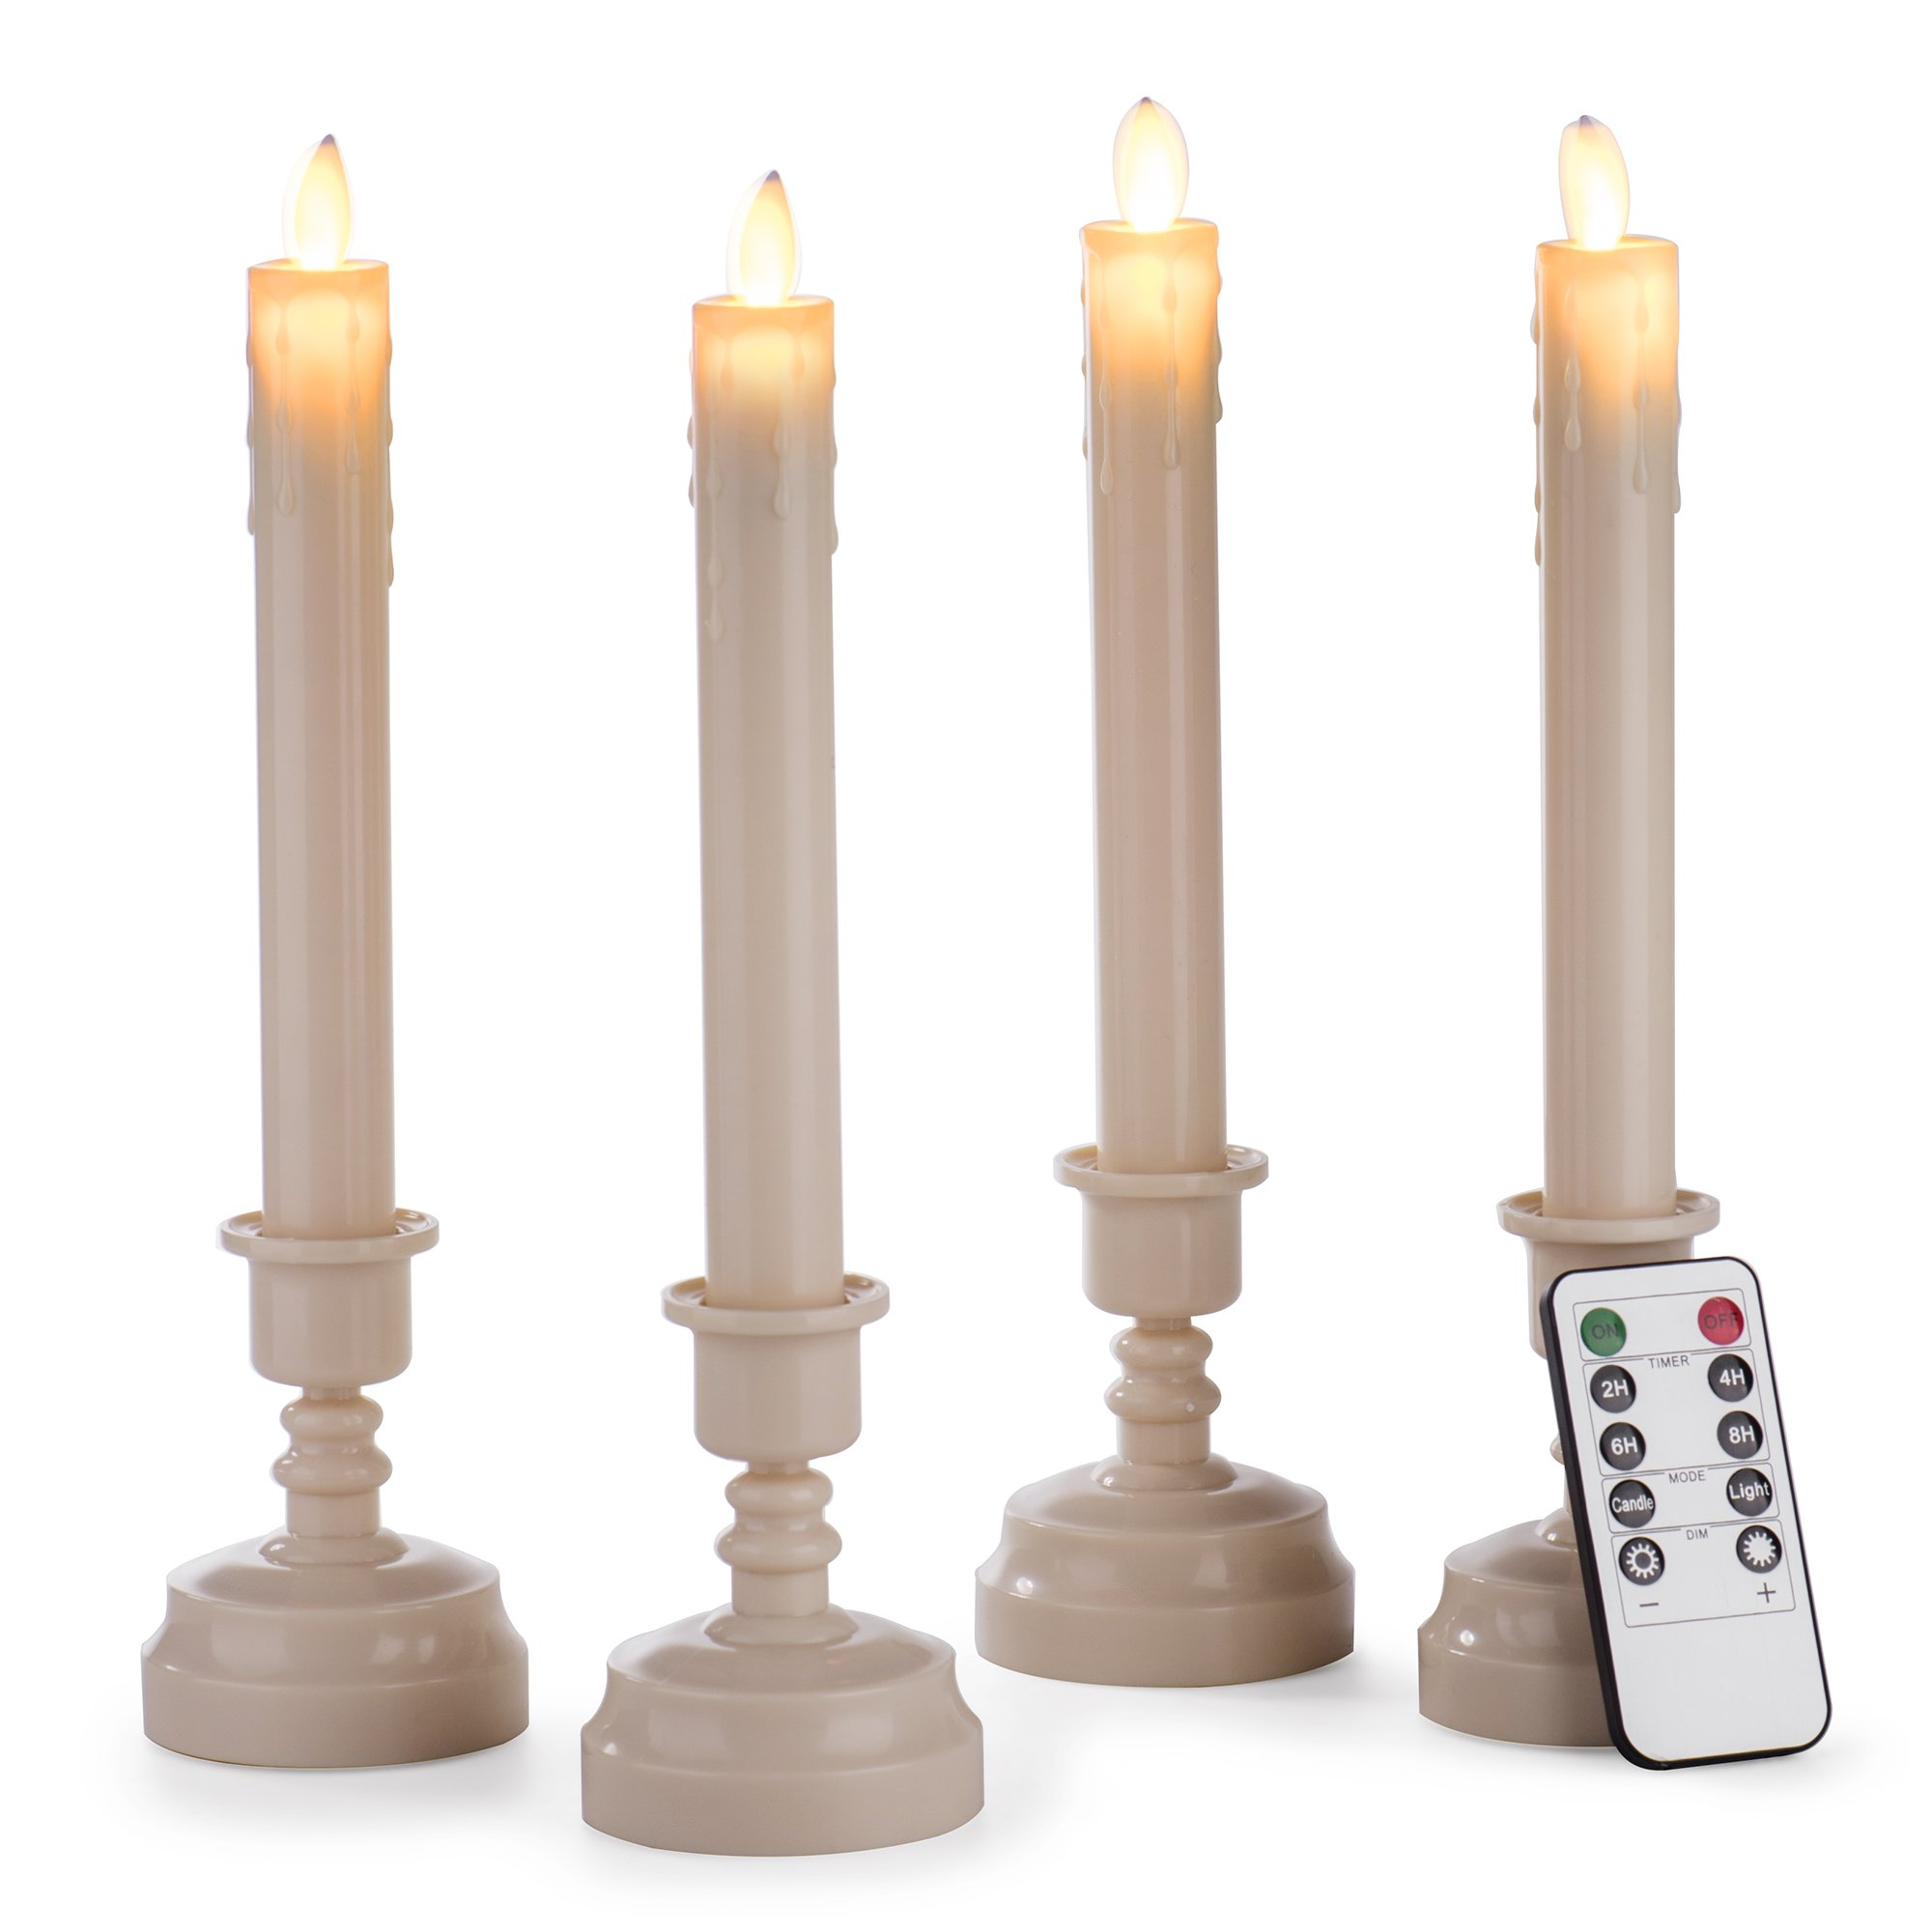 Enpornk Set of 4 12.8'' Dancing Flame Window Taper Candles Battery Operated Flickering Electric Flameless Pillar LED Candles with Remote Timer